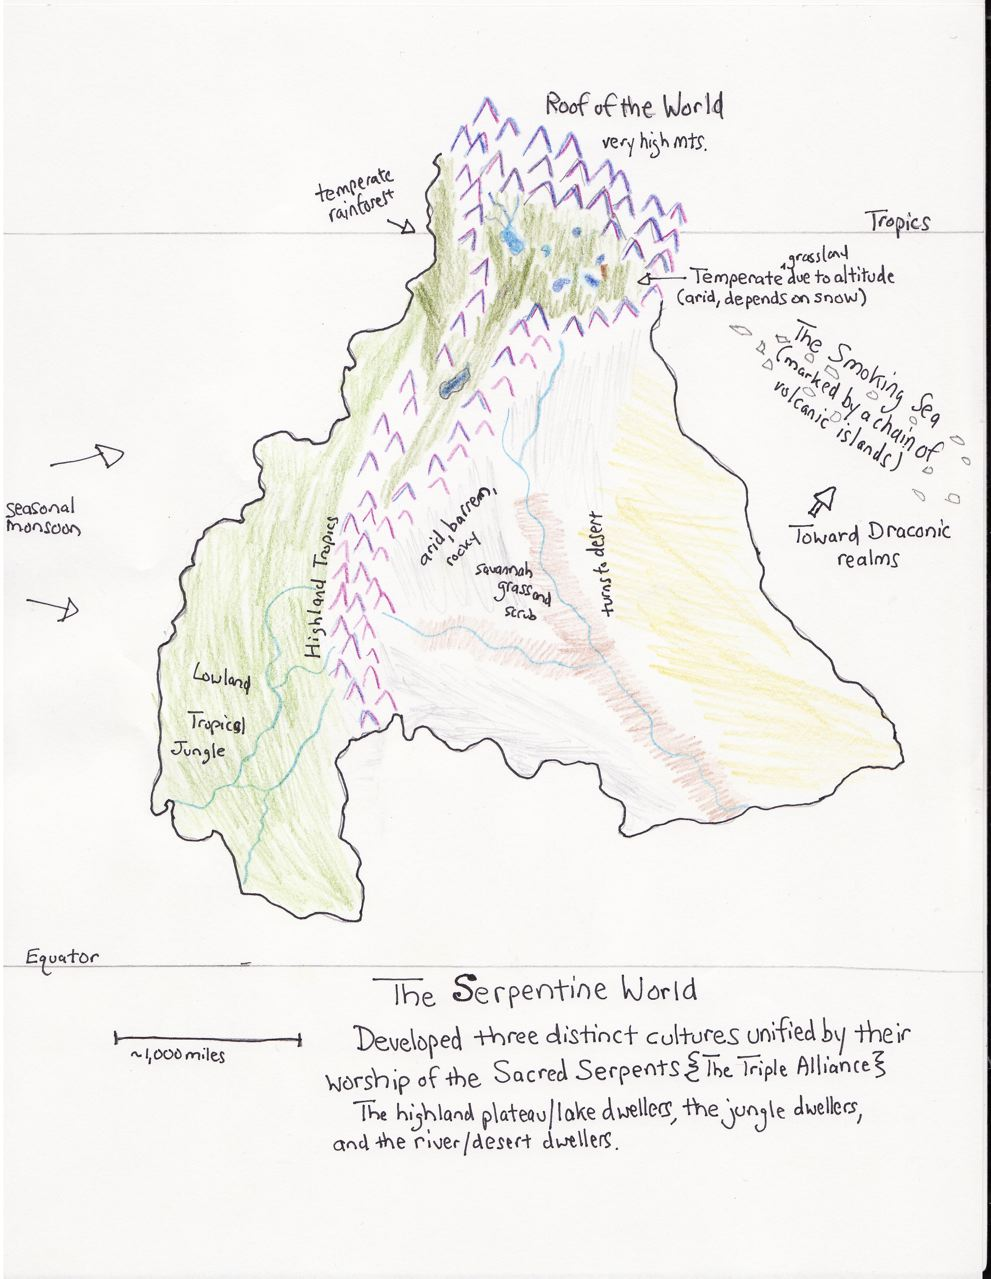 one hand clapping drawing some maps Mountain Ranges in Asia this one for the serpentine civilization has a huge andean or himalayan style mountain range with glaciers and a high temperate plateau dominated by a pair